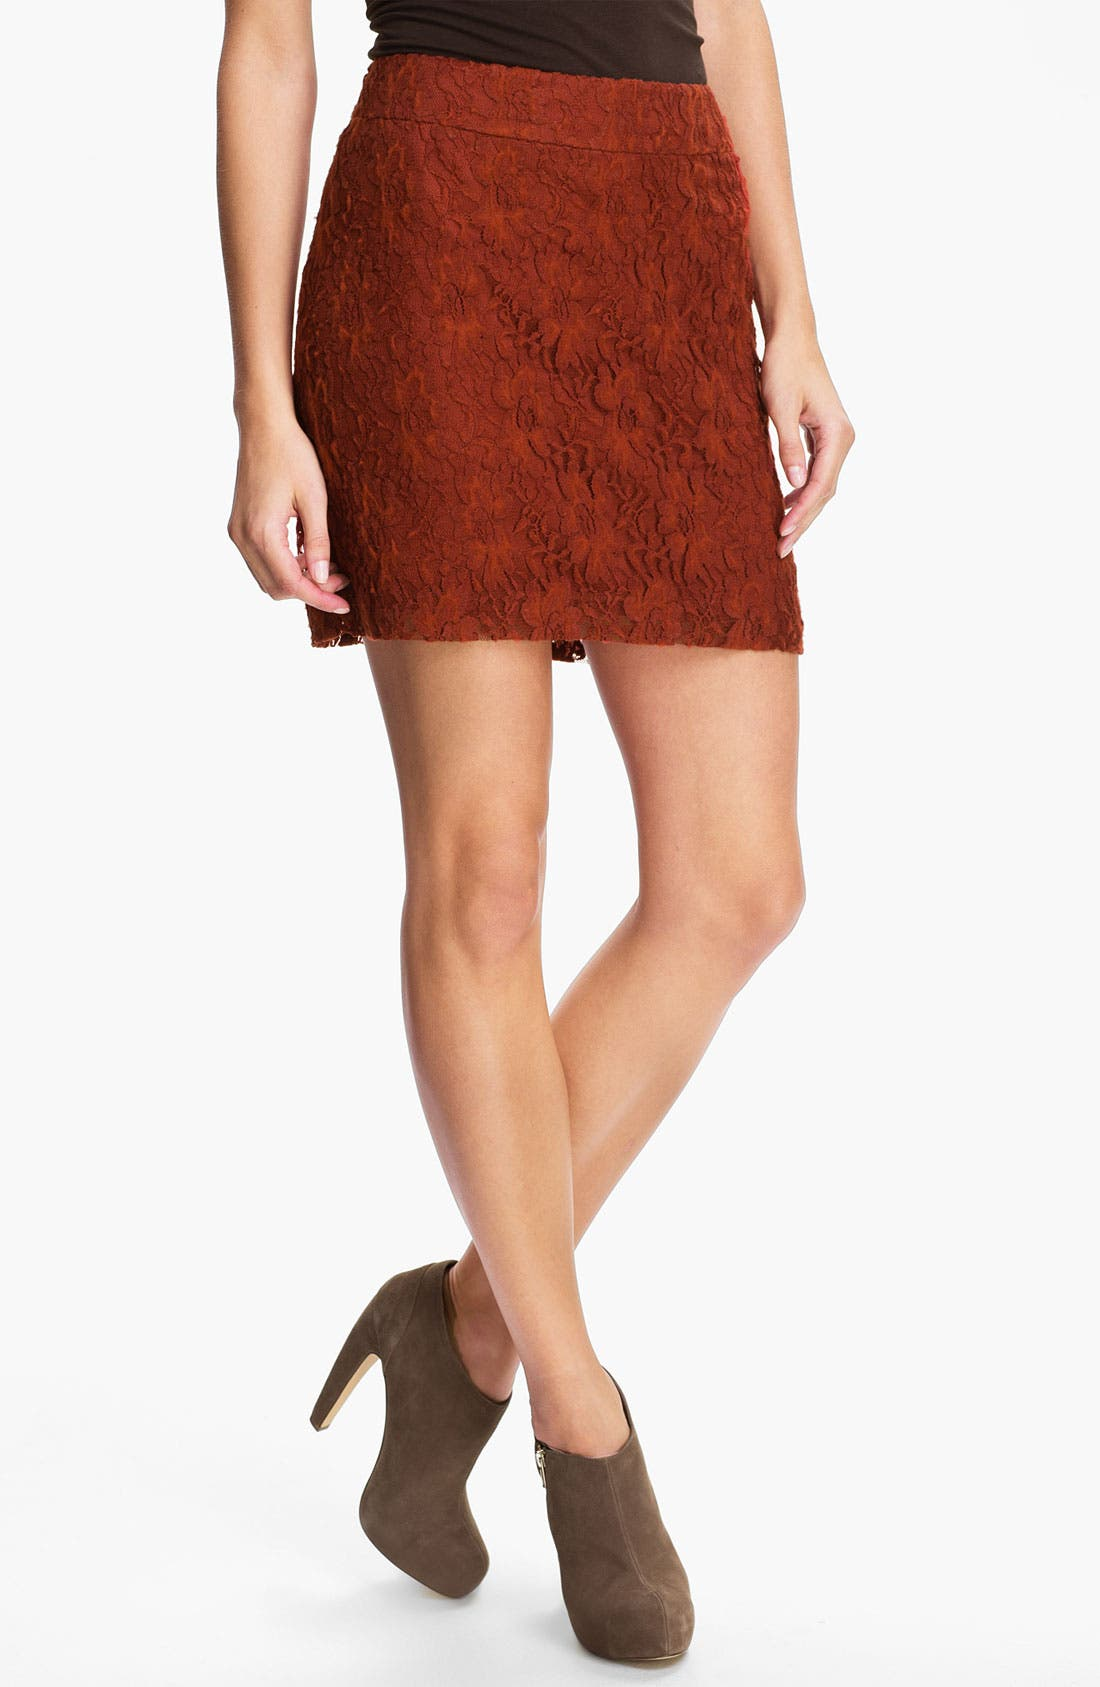 Alternate Image 1 Selected - Kensie 'Fuzzy Lace' Skirt (Online Exclusive)